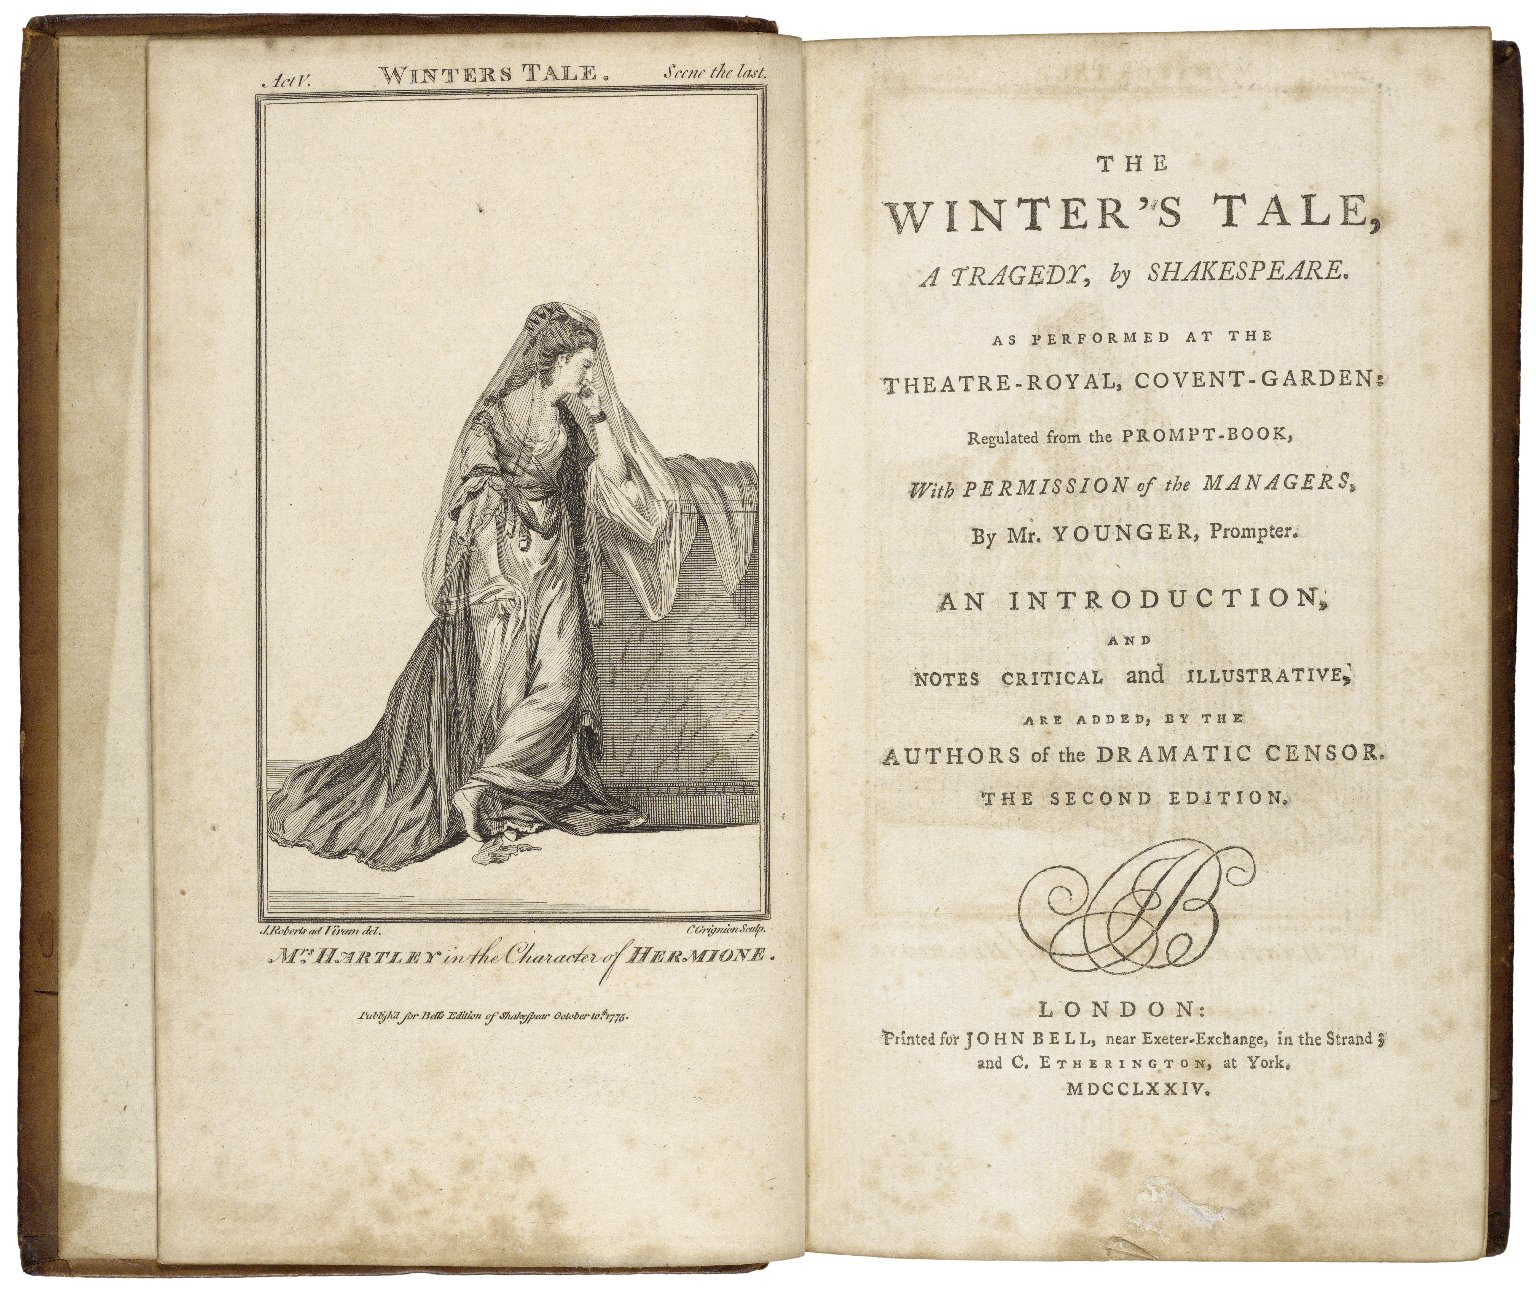 [Works. 1774. John Bell] Bell's edition of Shakespeare's plays : as they are now performed at the Theatres Royal in London : regulated from the prompt books of each house, by permission, with notes critical and illustrative / by the authors of the Dramatic censor.